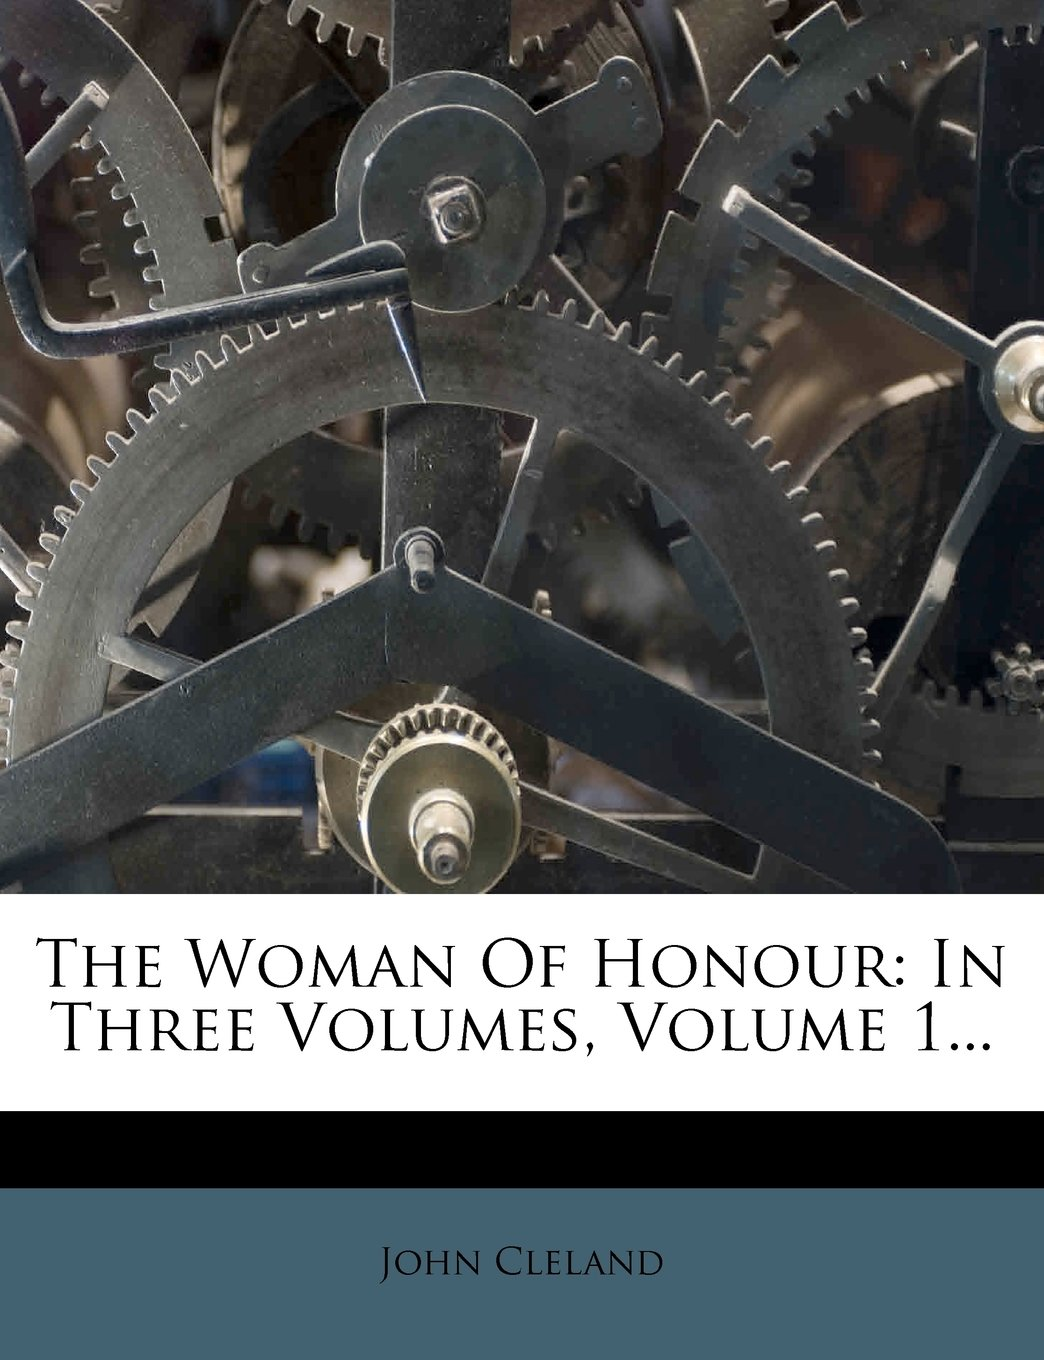 The Woman Of Honour: In Three Volumes, Volume 1... pdf